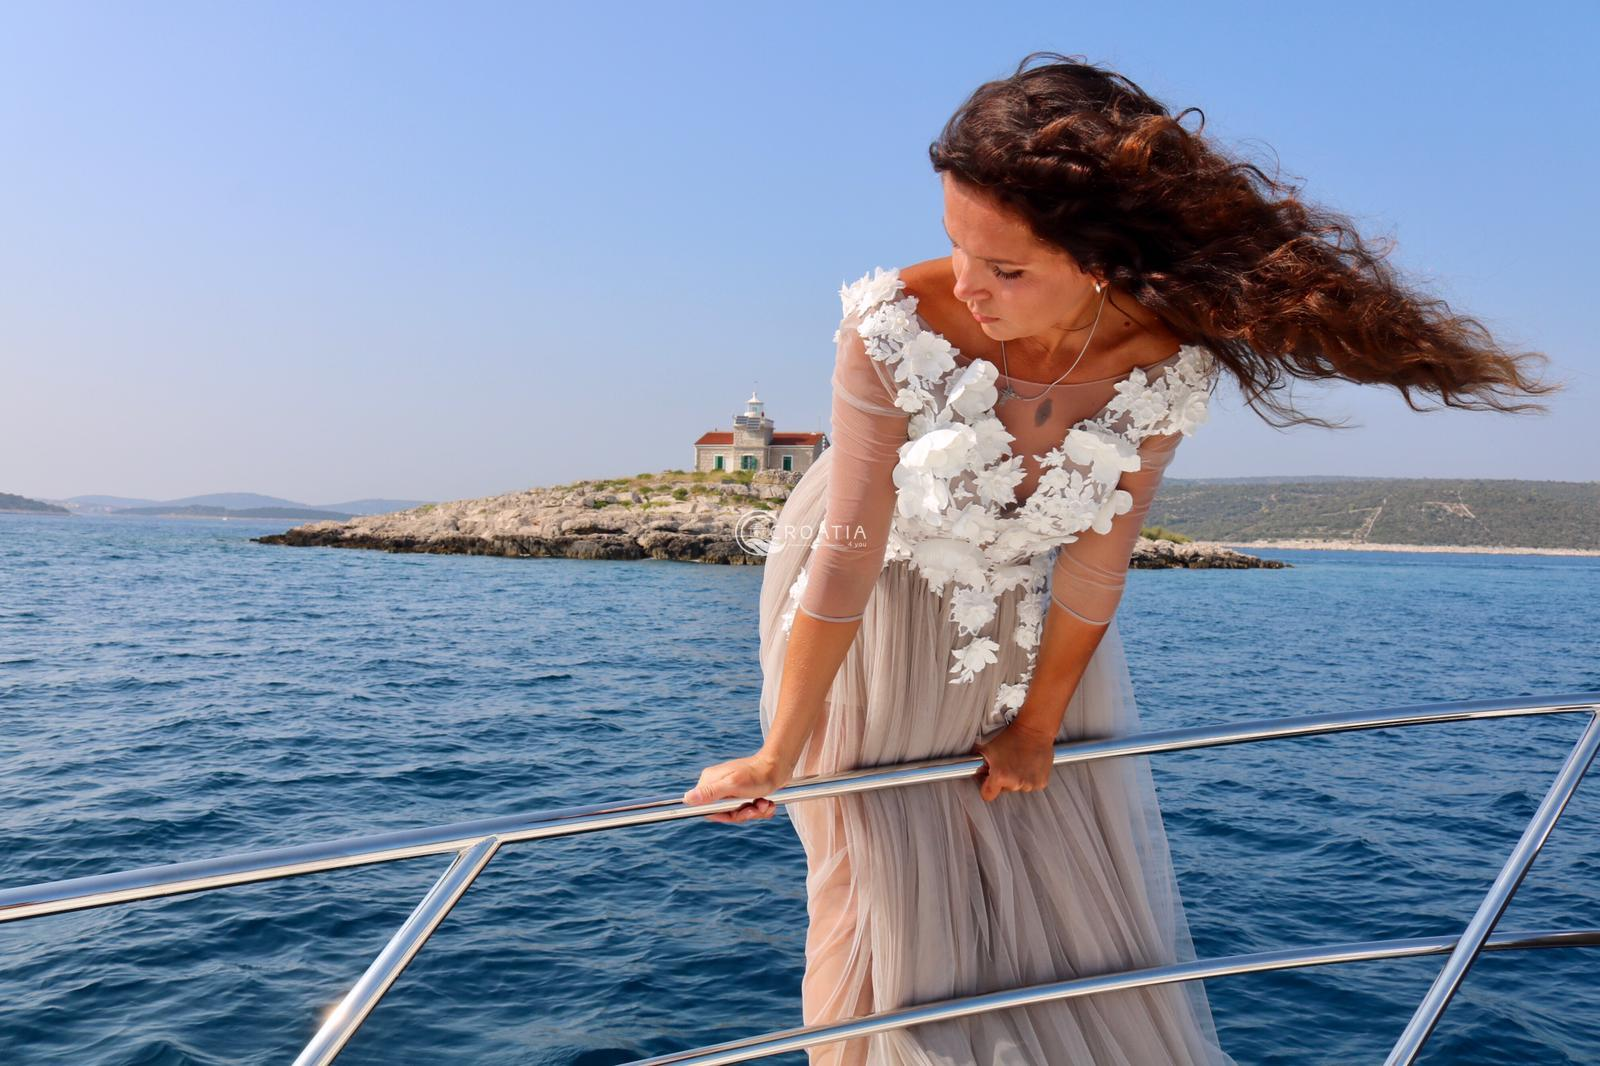 Intimate wedding on luxury yacht